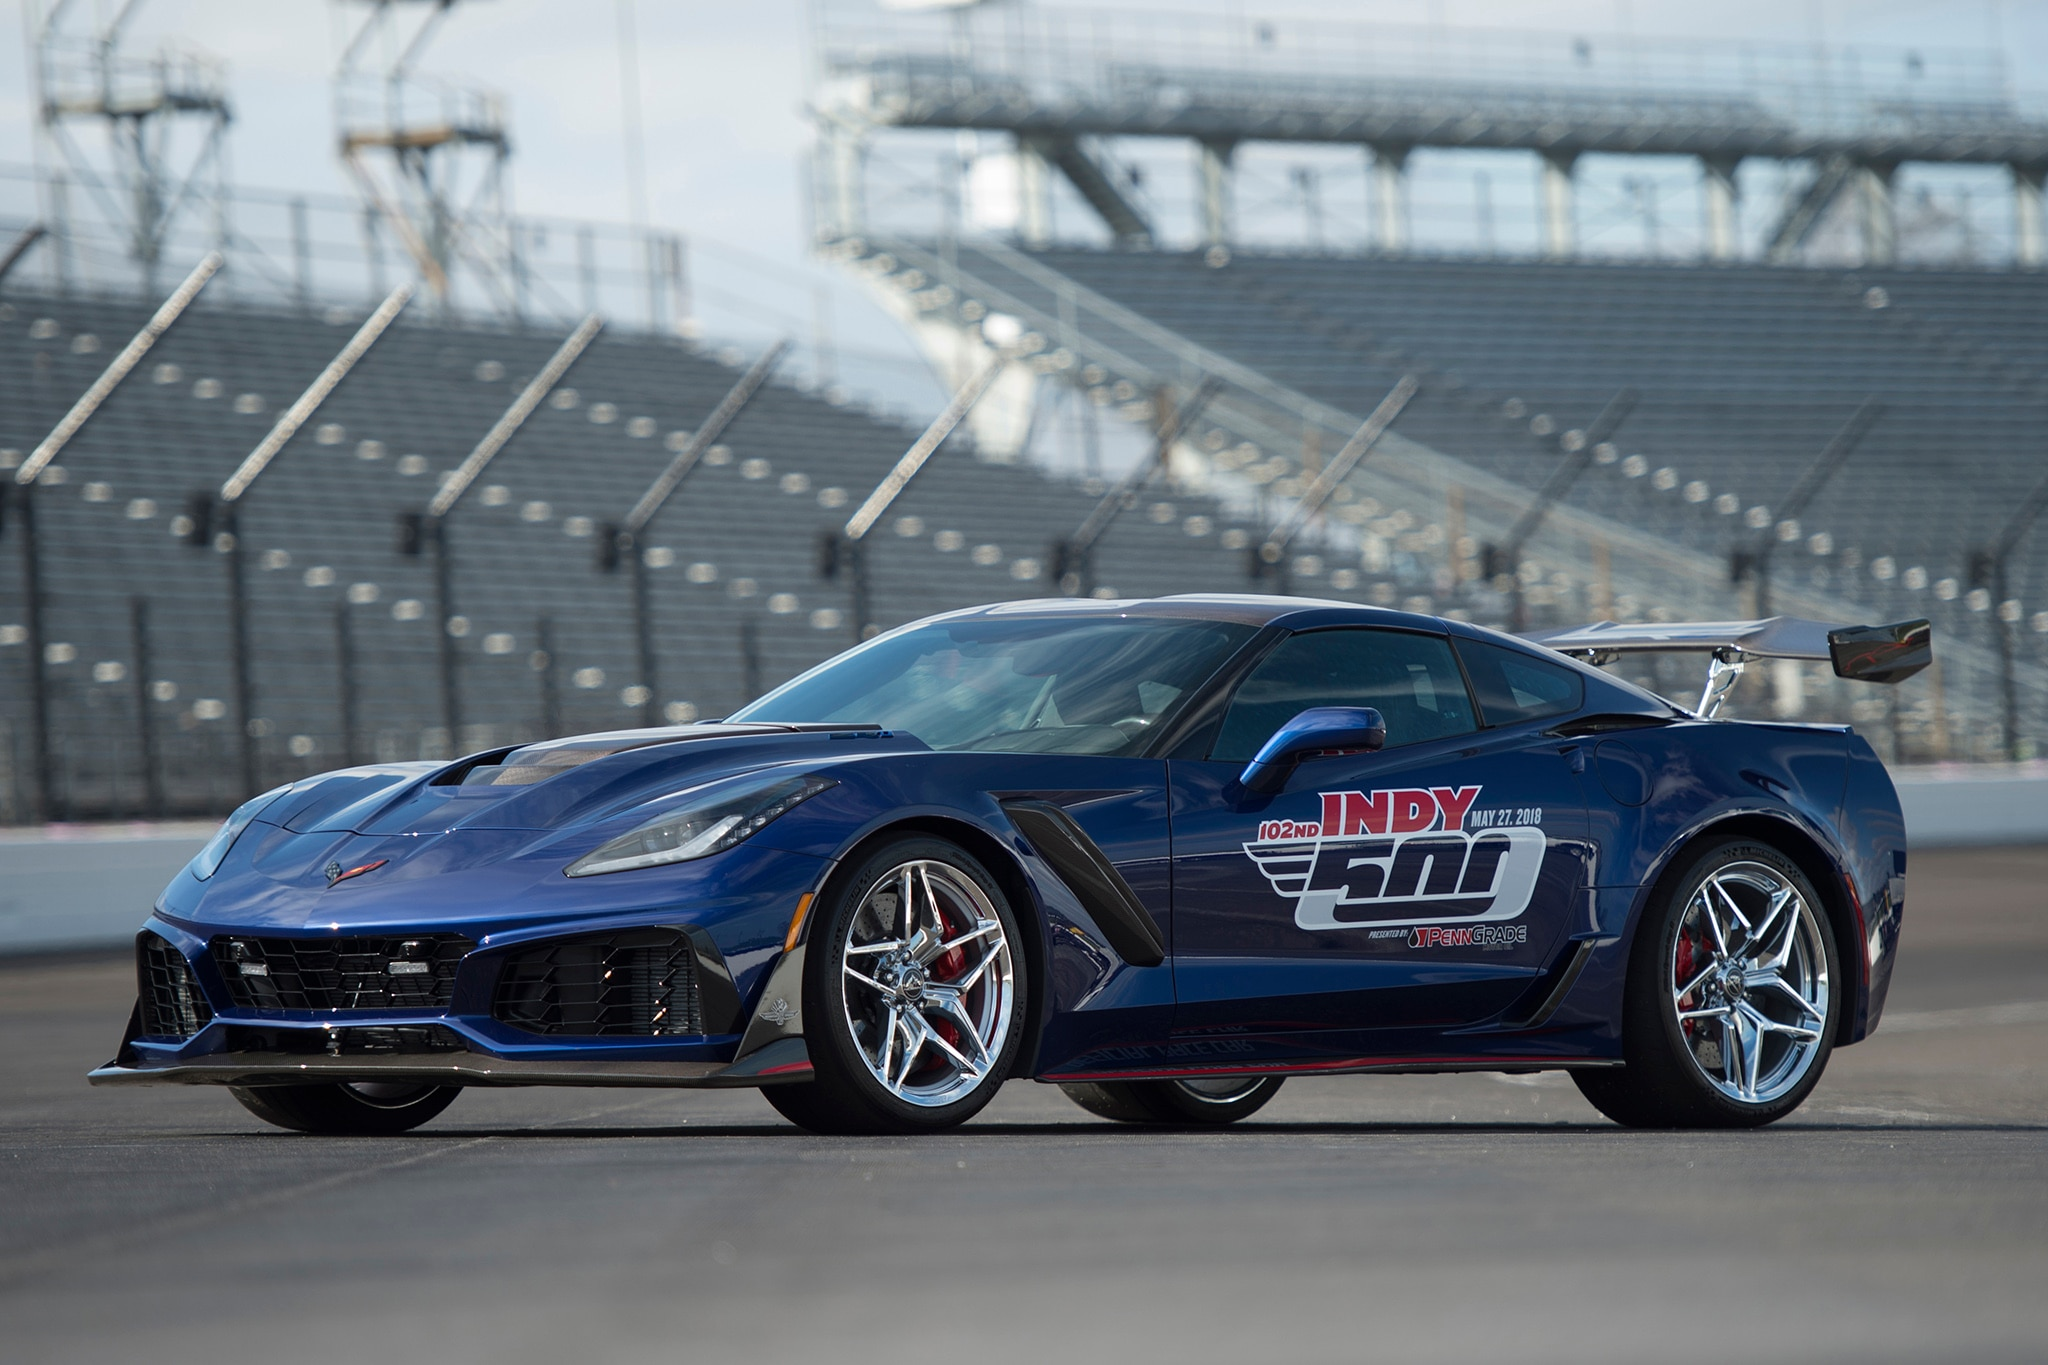 Indy 500 to be Paced by 2019 Chevrolet Corvette ZR1